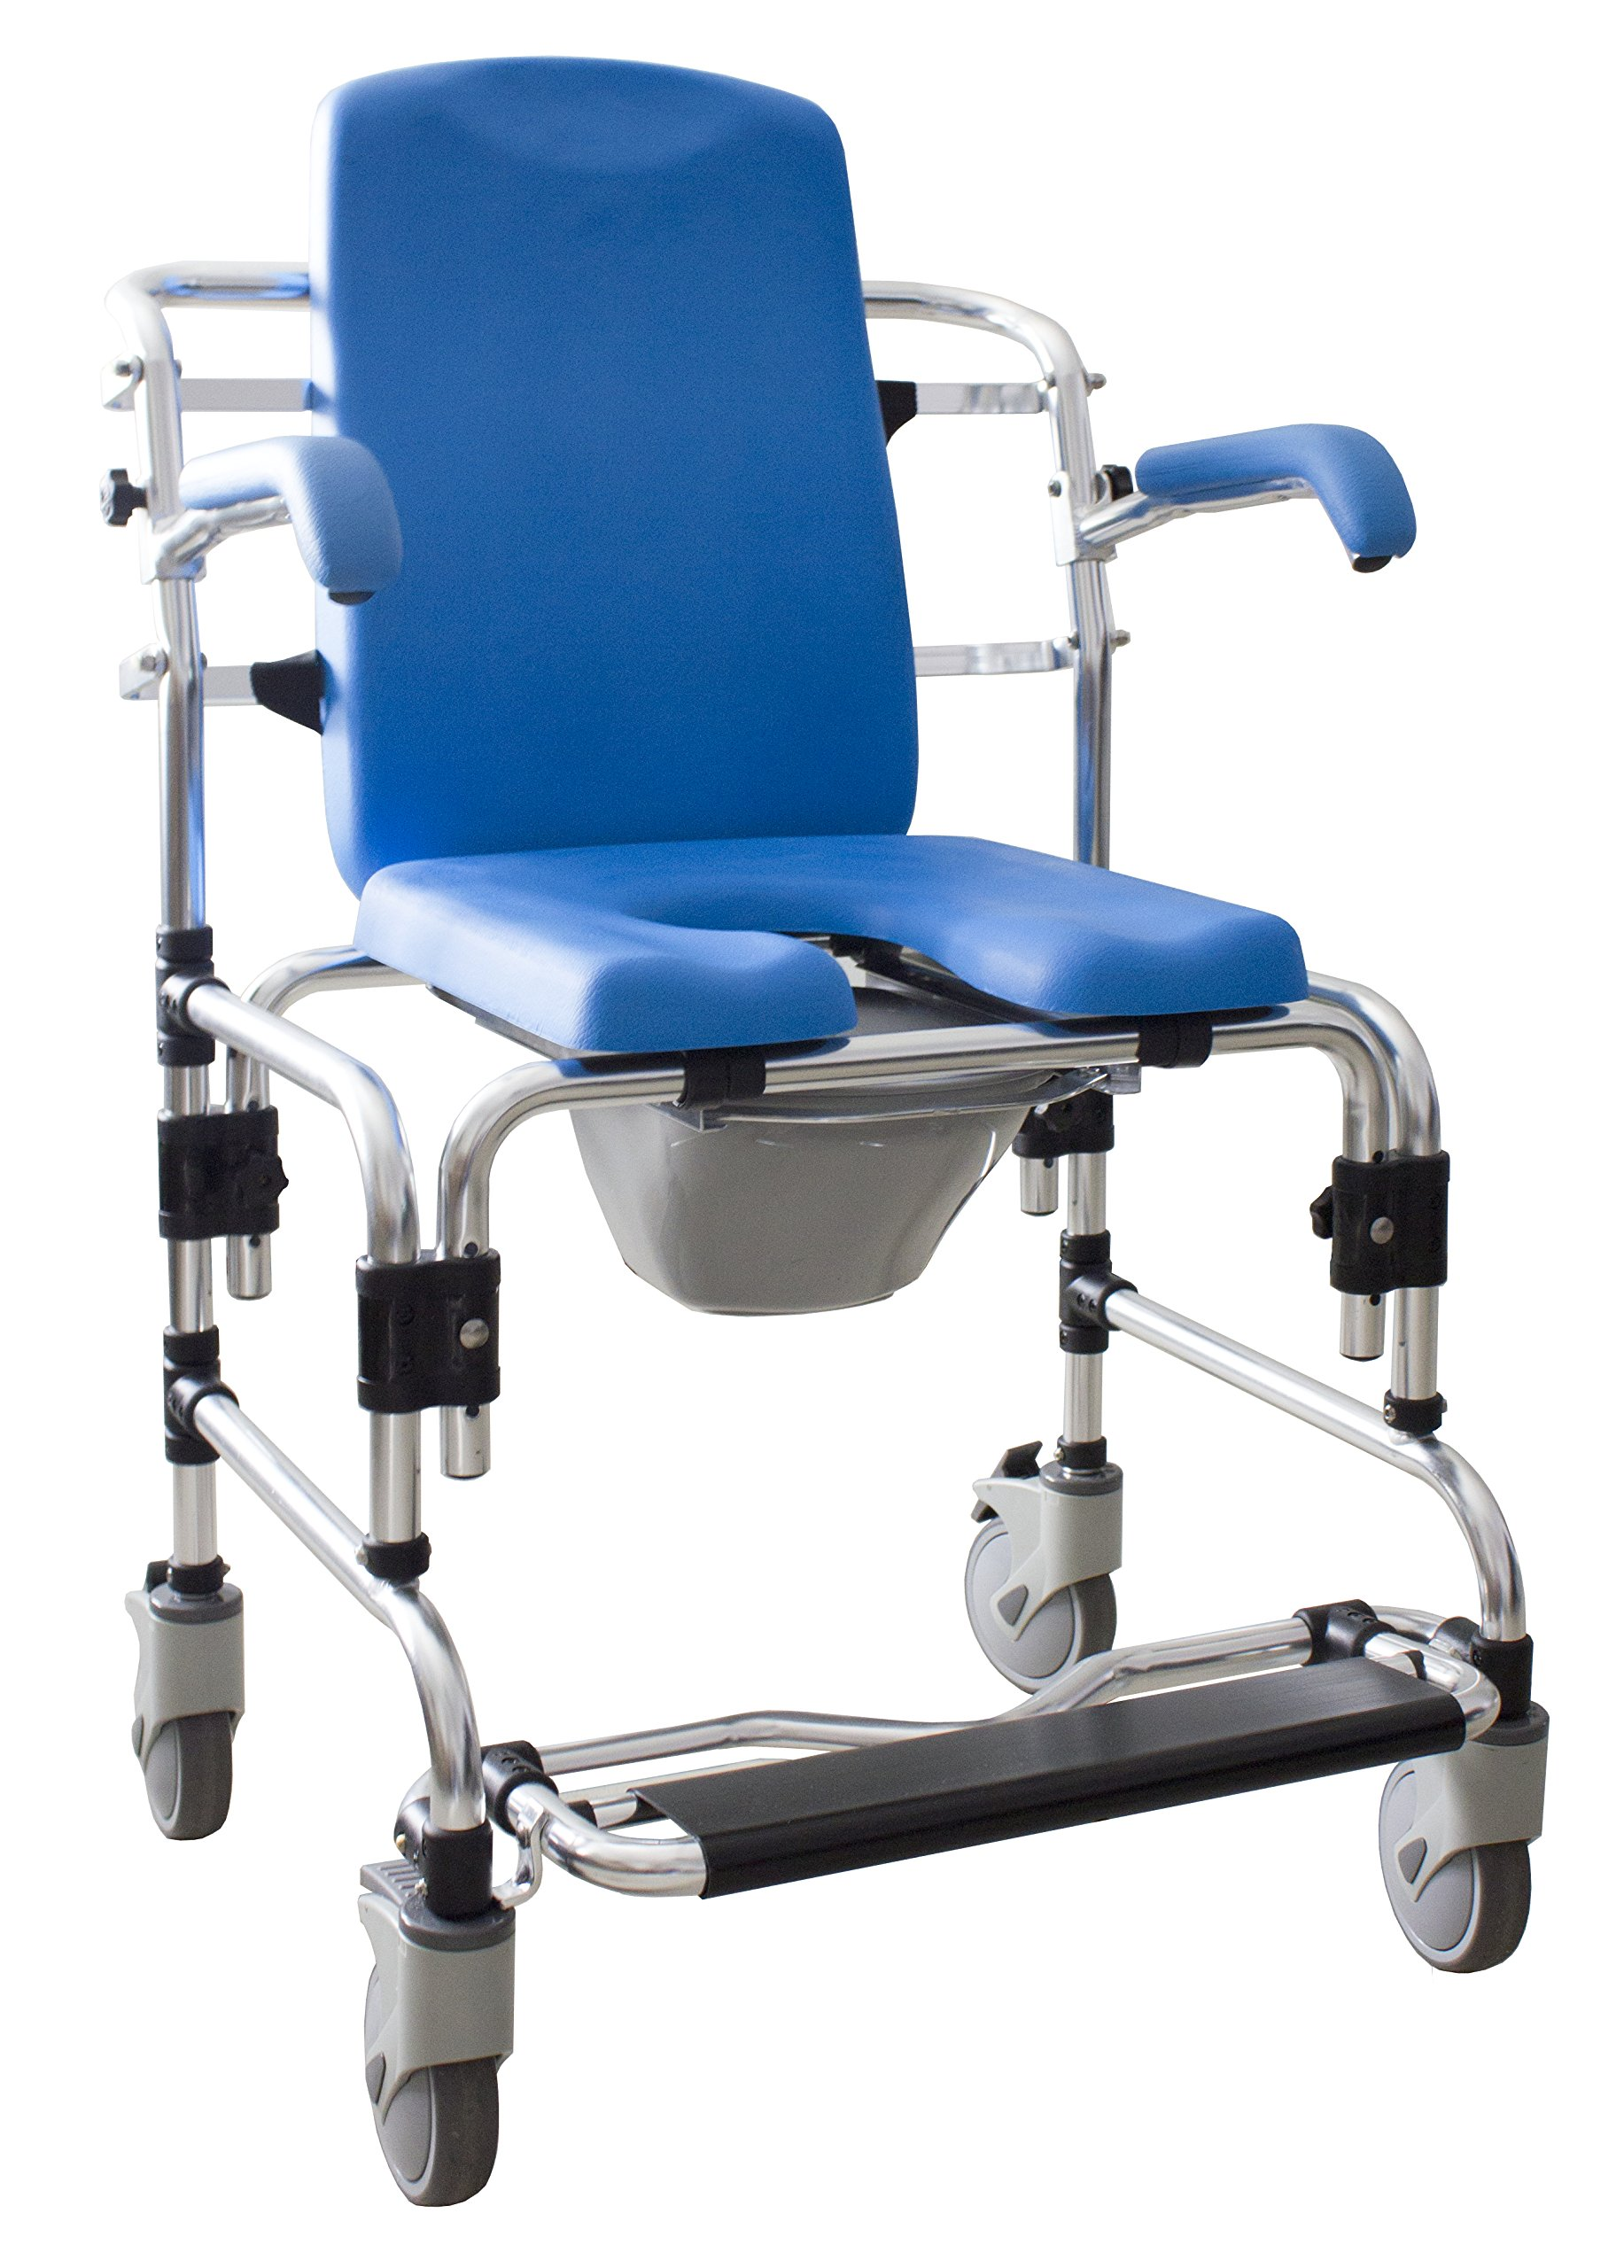 Caspian Professional Mobile Shower/Commode Chair-Padded by Platinum Health